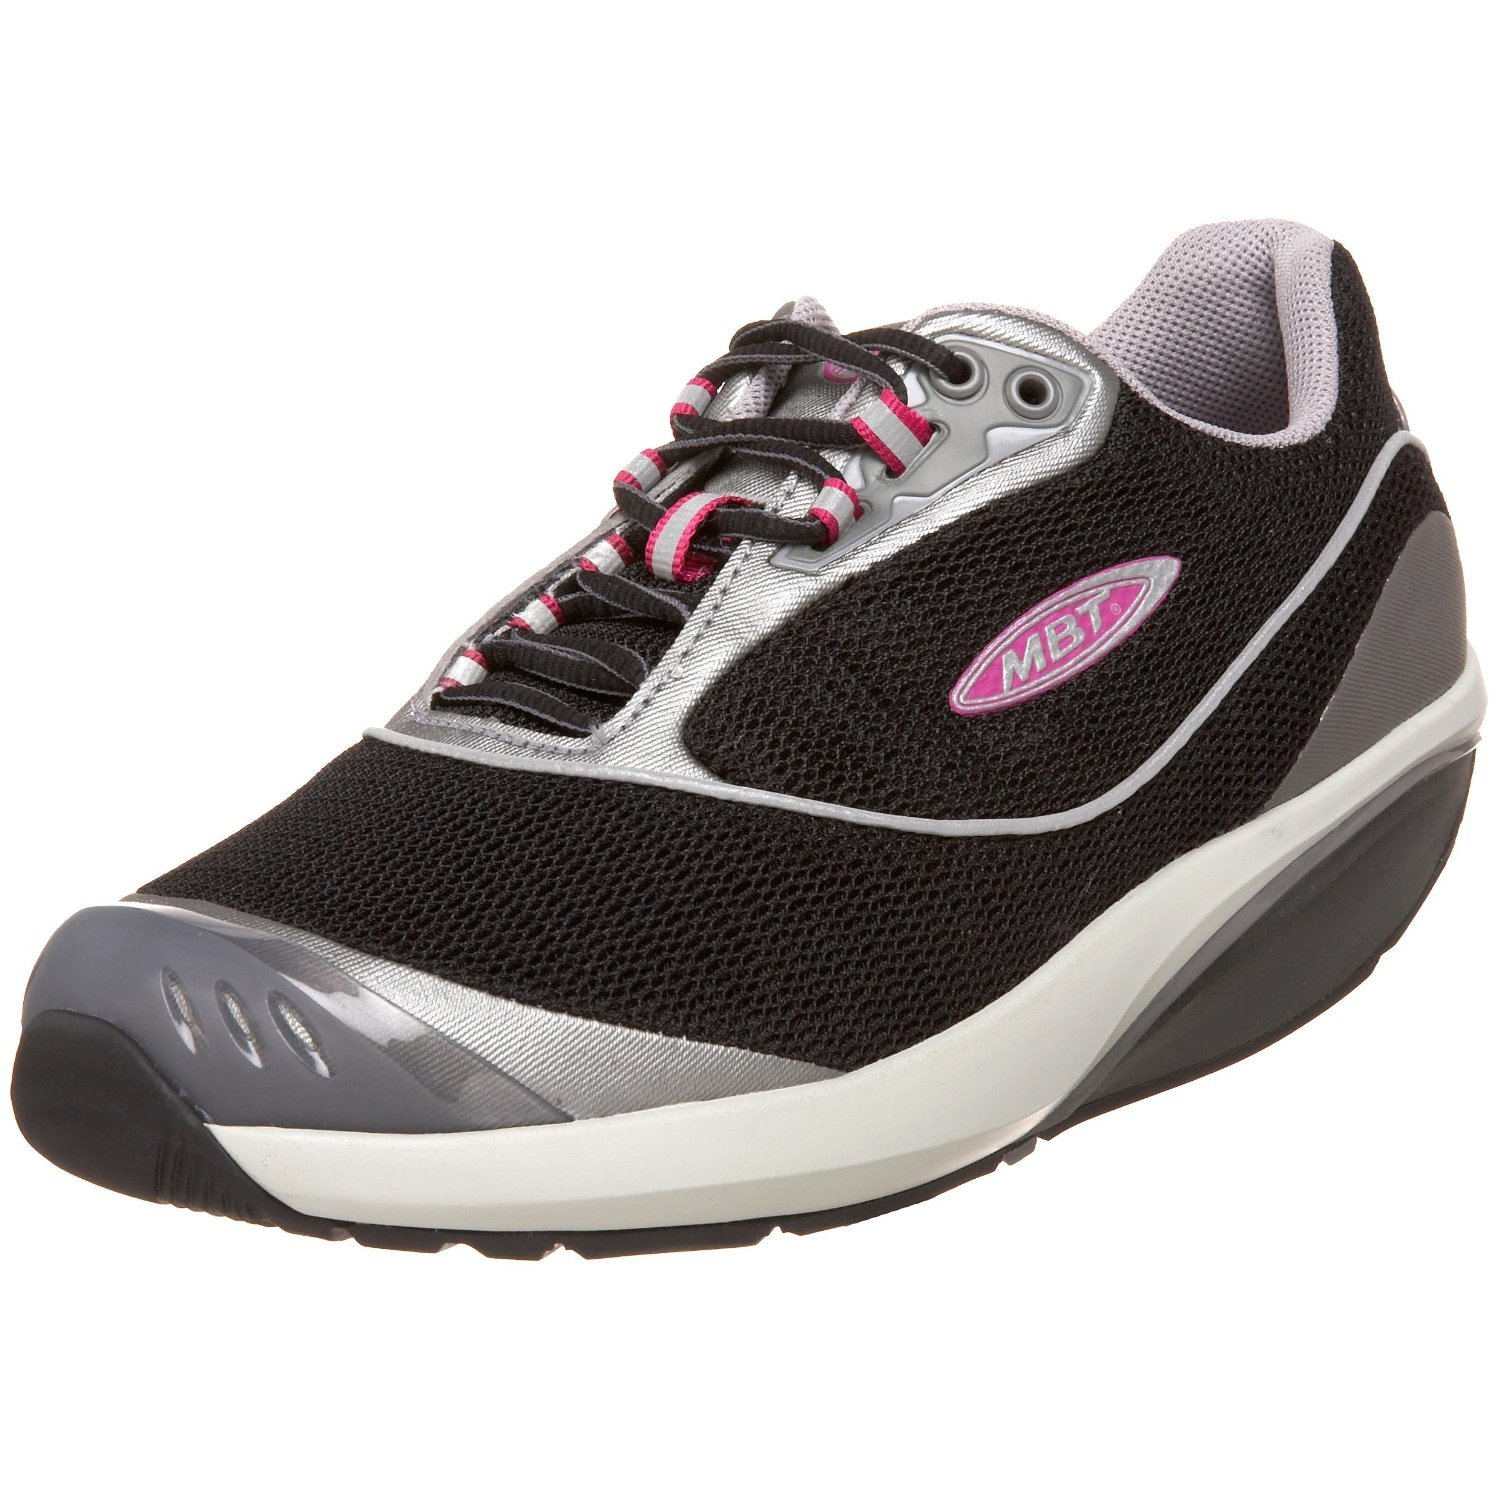 MBT Women's Fora Black Athletic Walking Shoes at Sears.com